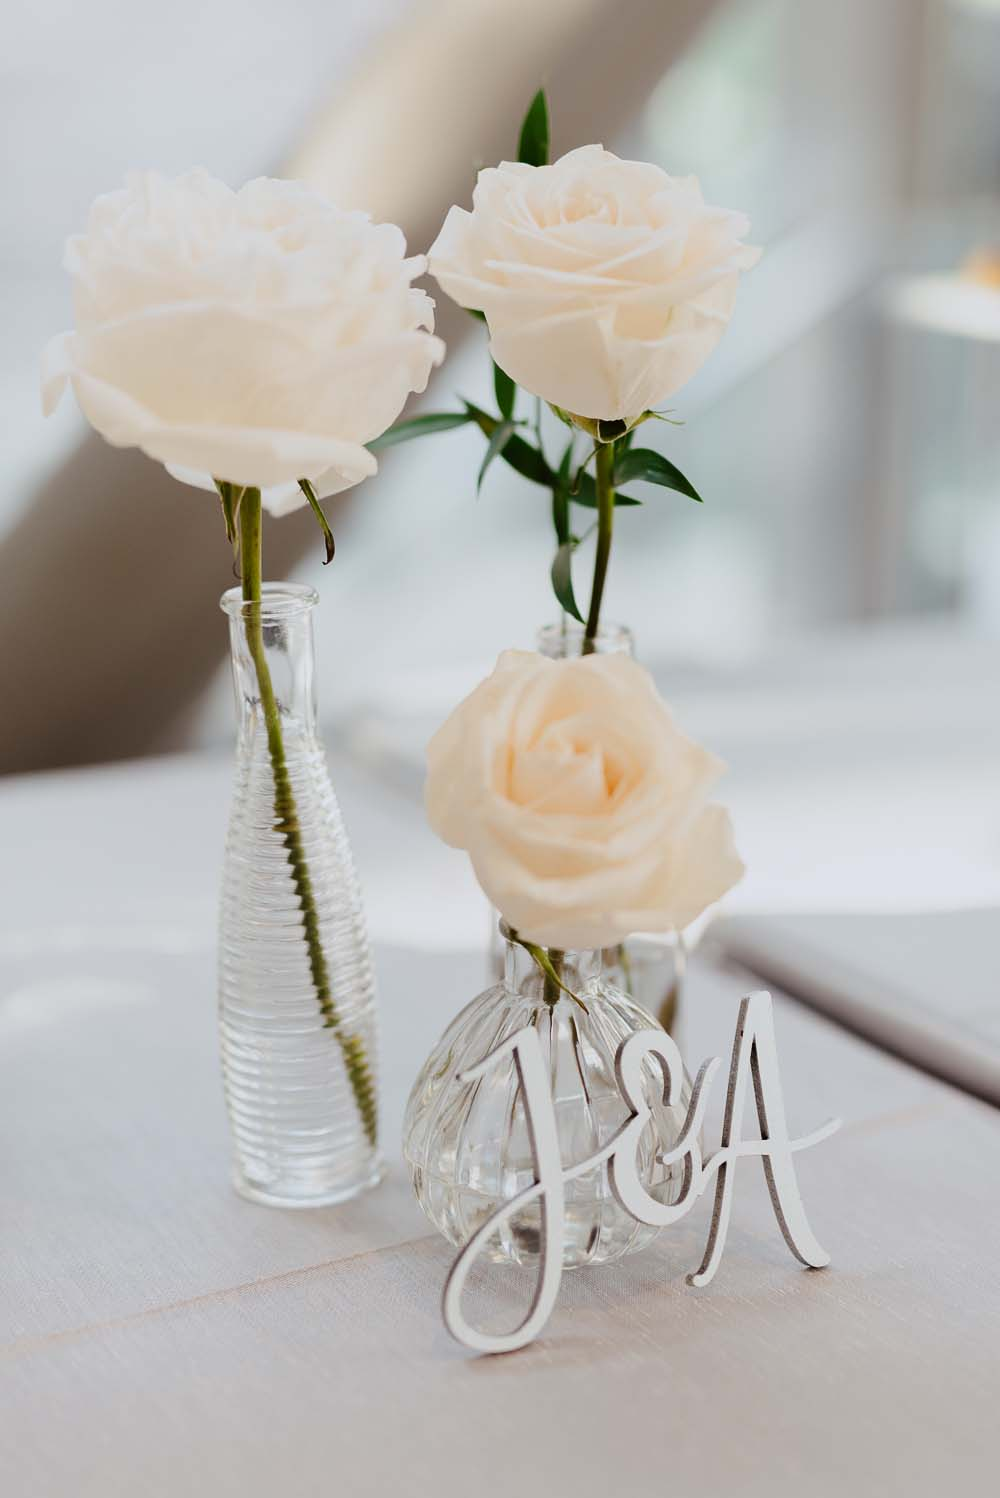 An Opulent Wedding At The Royal Conservatory Of Music - roses